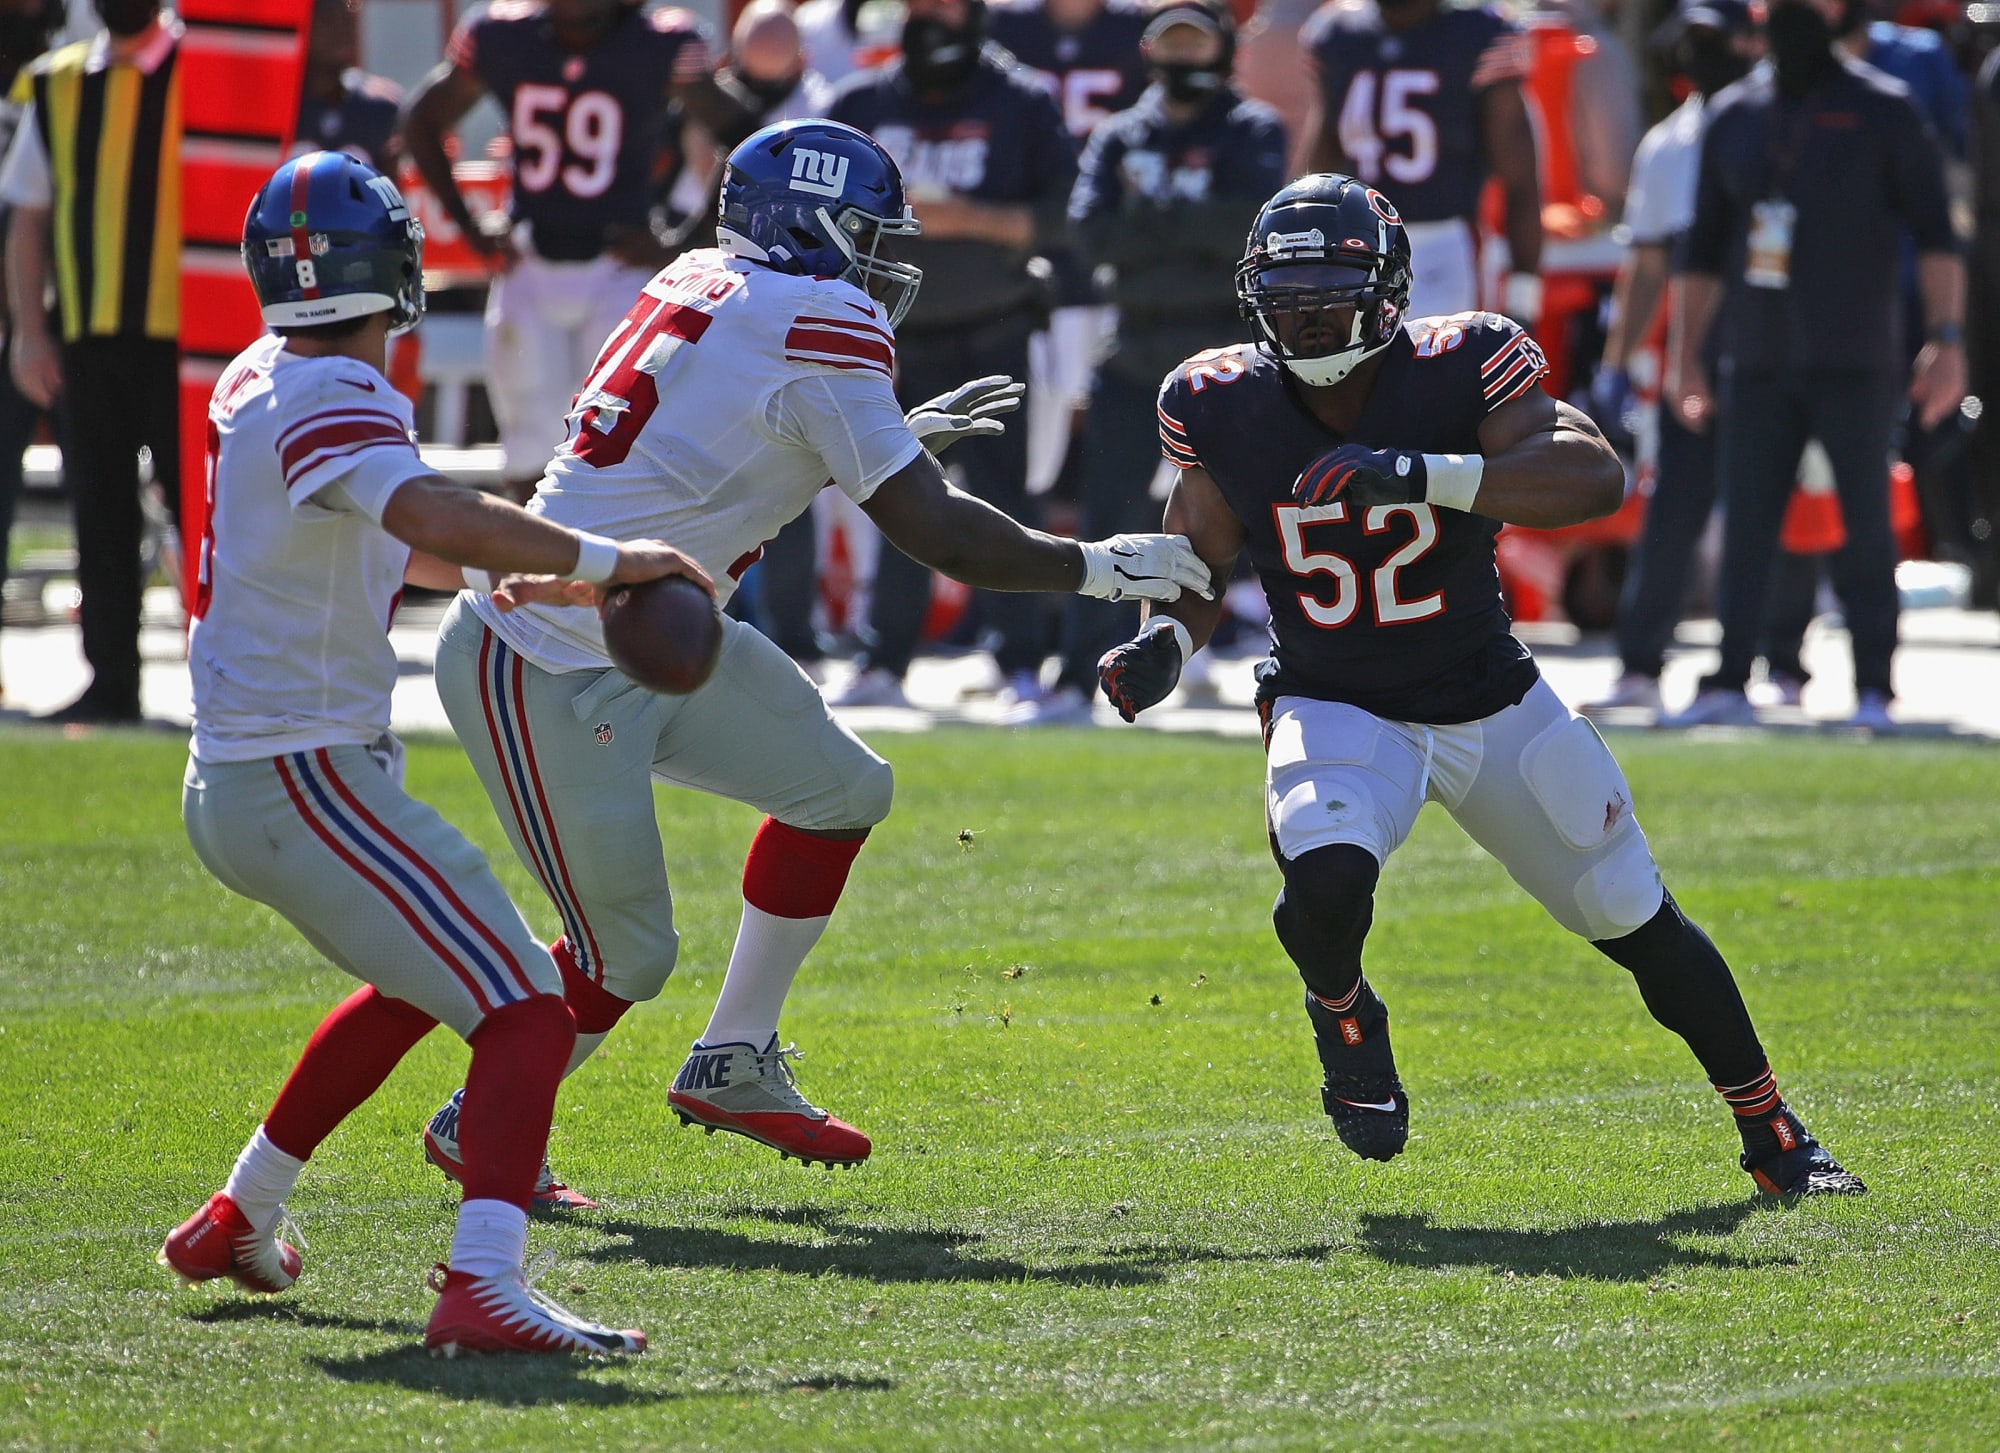 Khalil Mack shows how awful the Giants' offensive line is right now